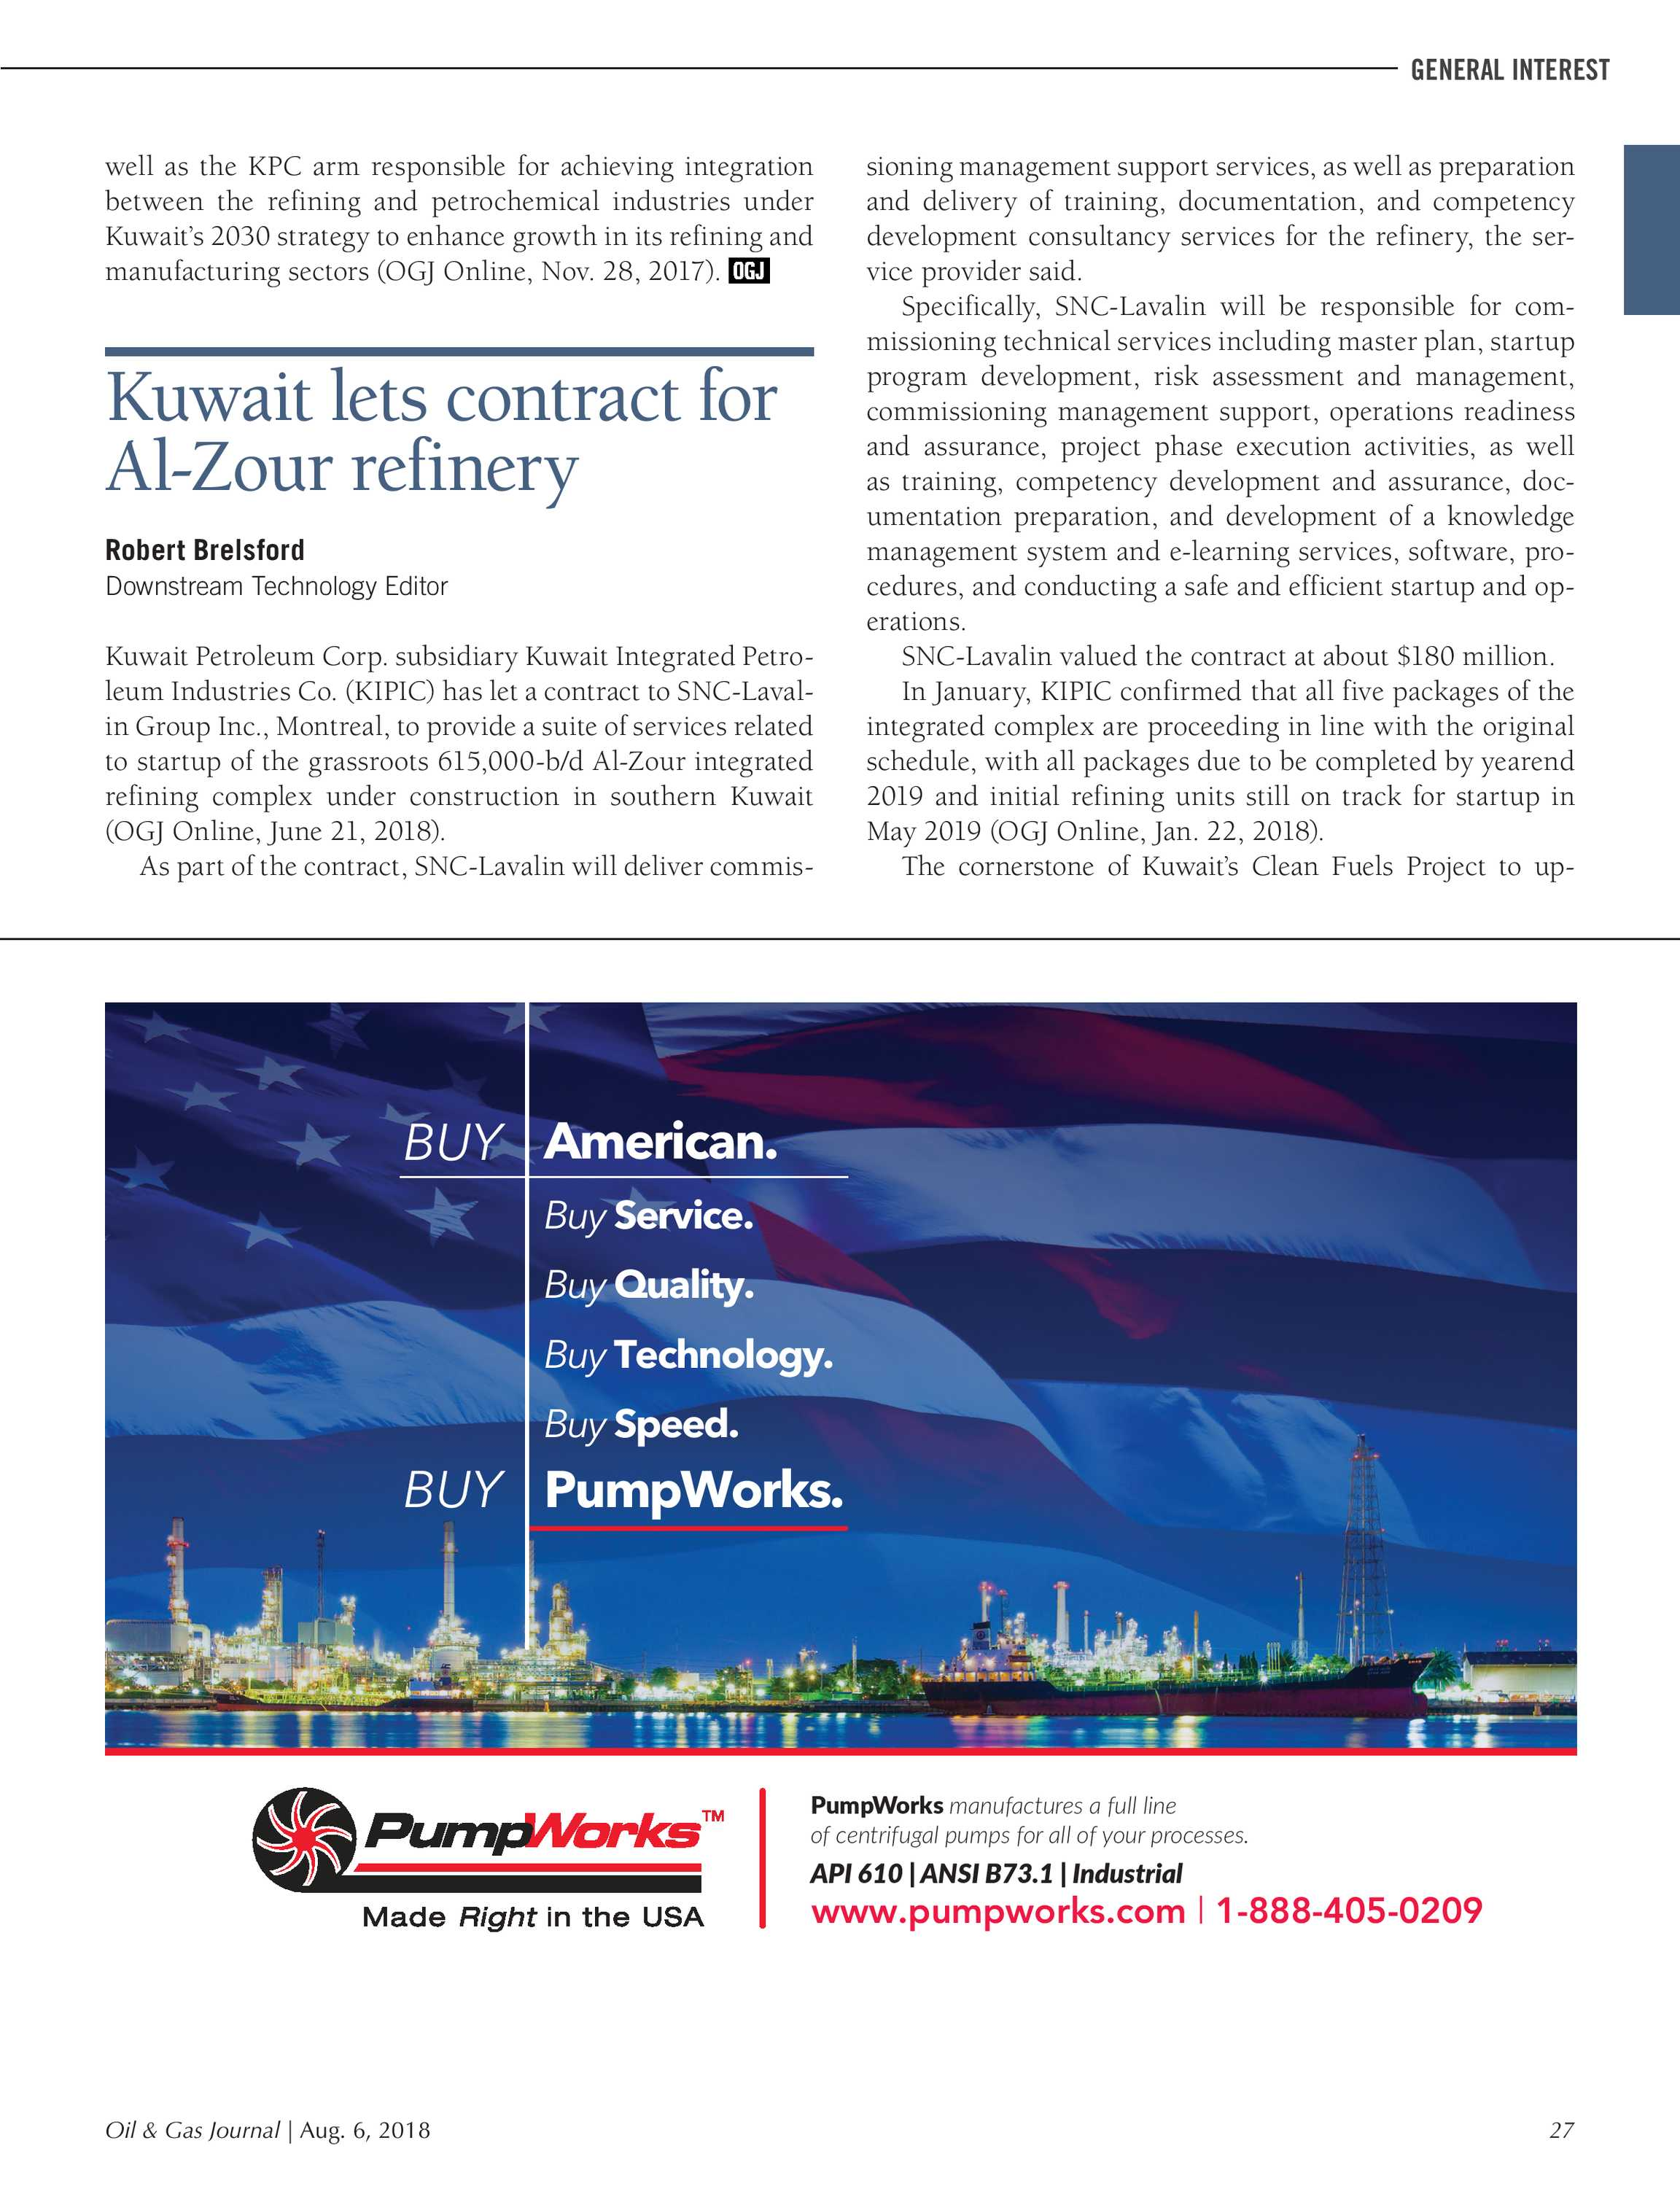 Oil & Gas Journal - August 6, 2018 - page 27